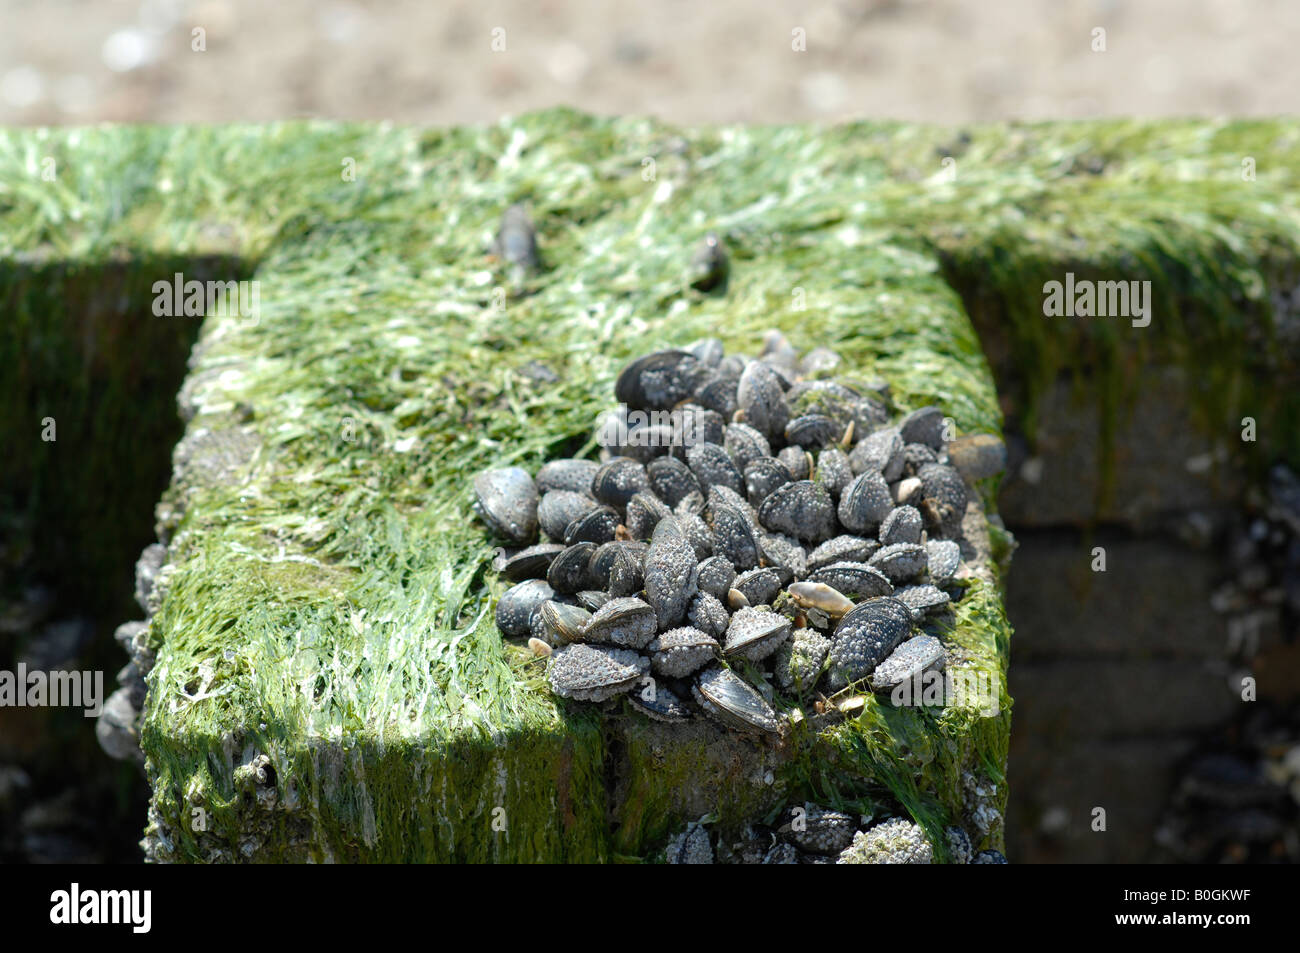 Shells and seaweed on beach bollards - Stock Image